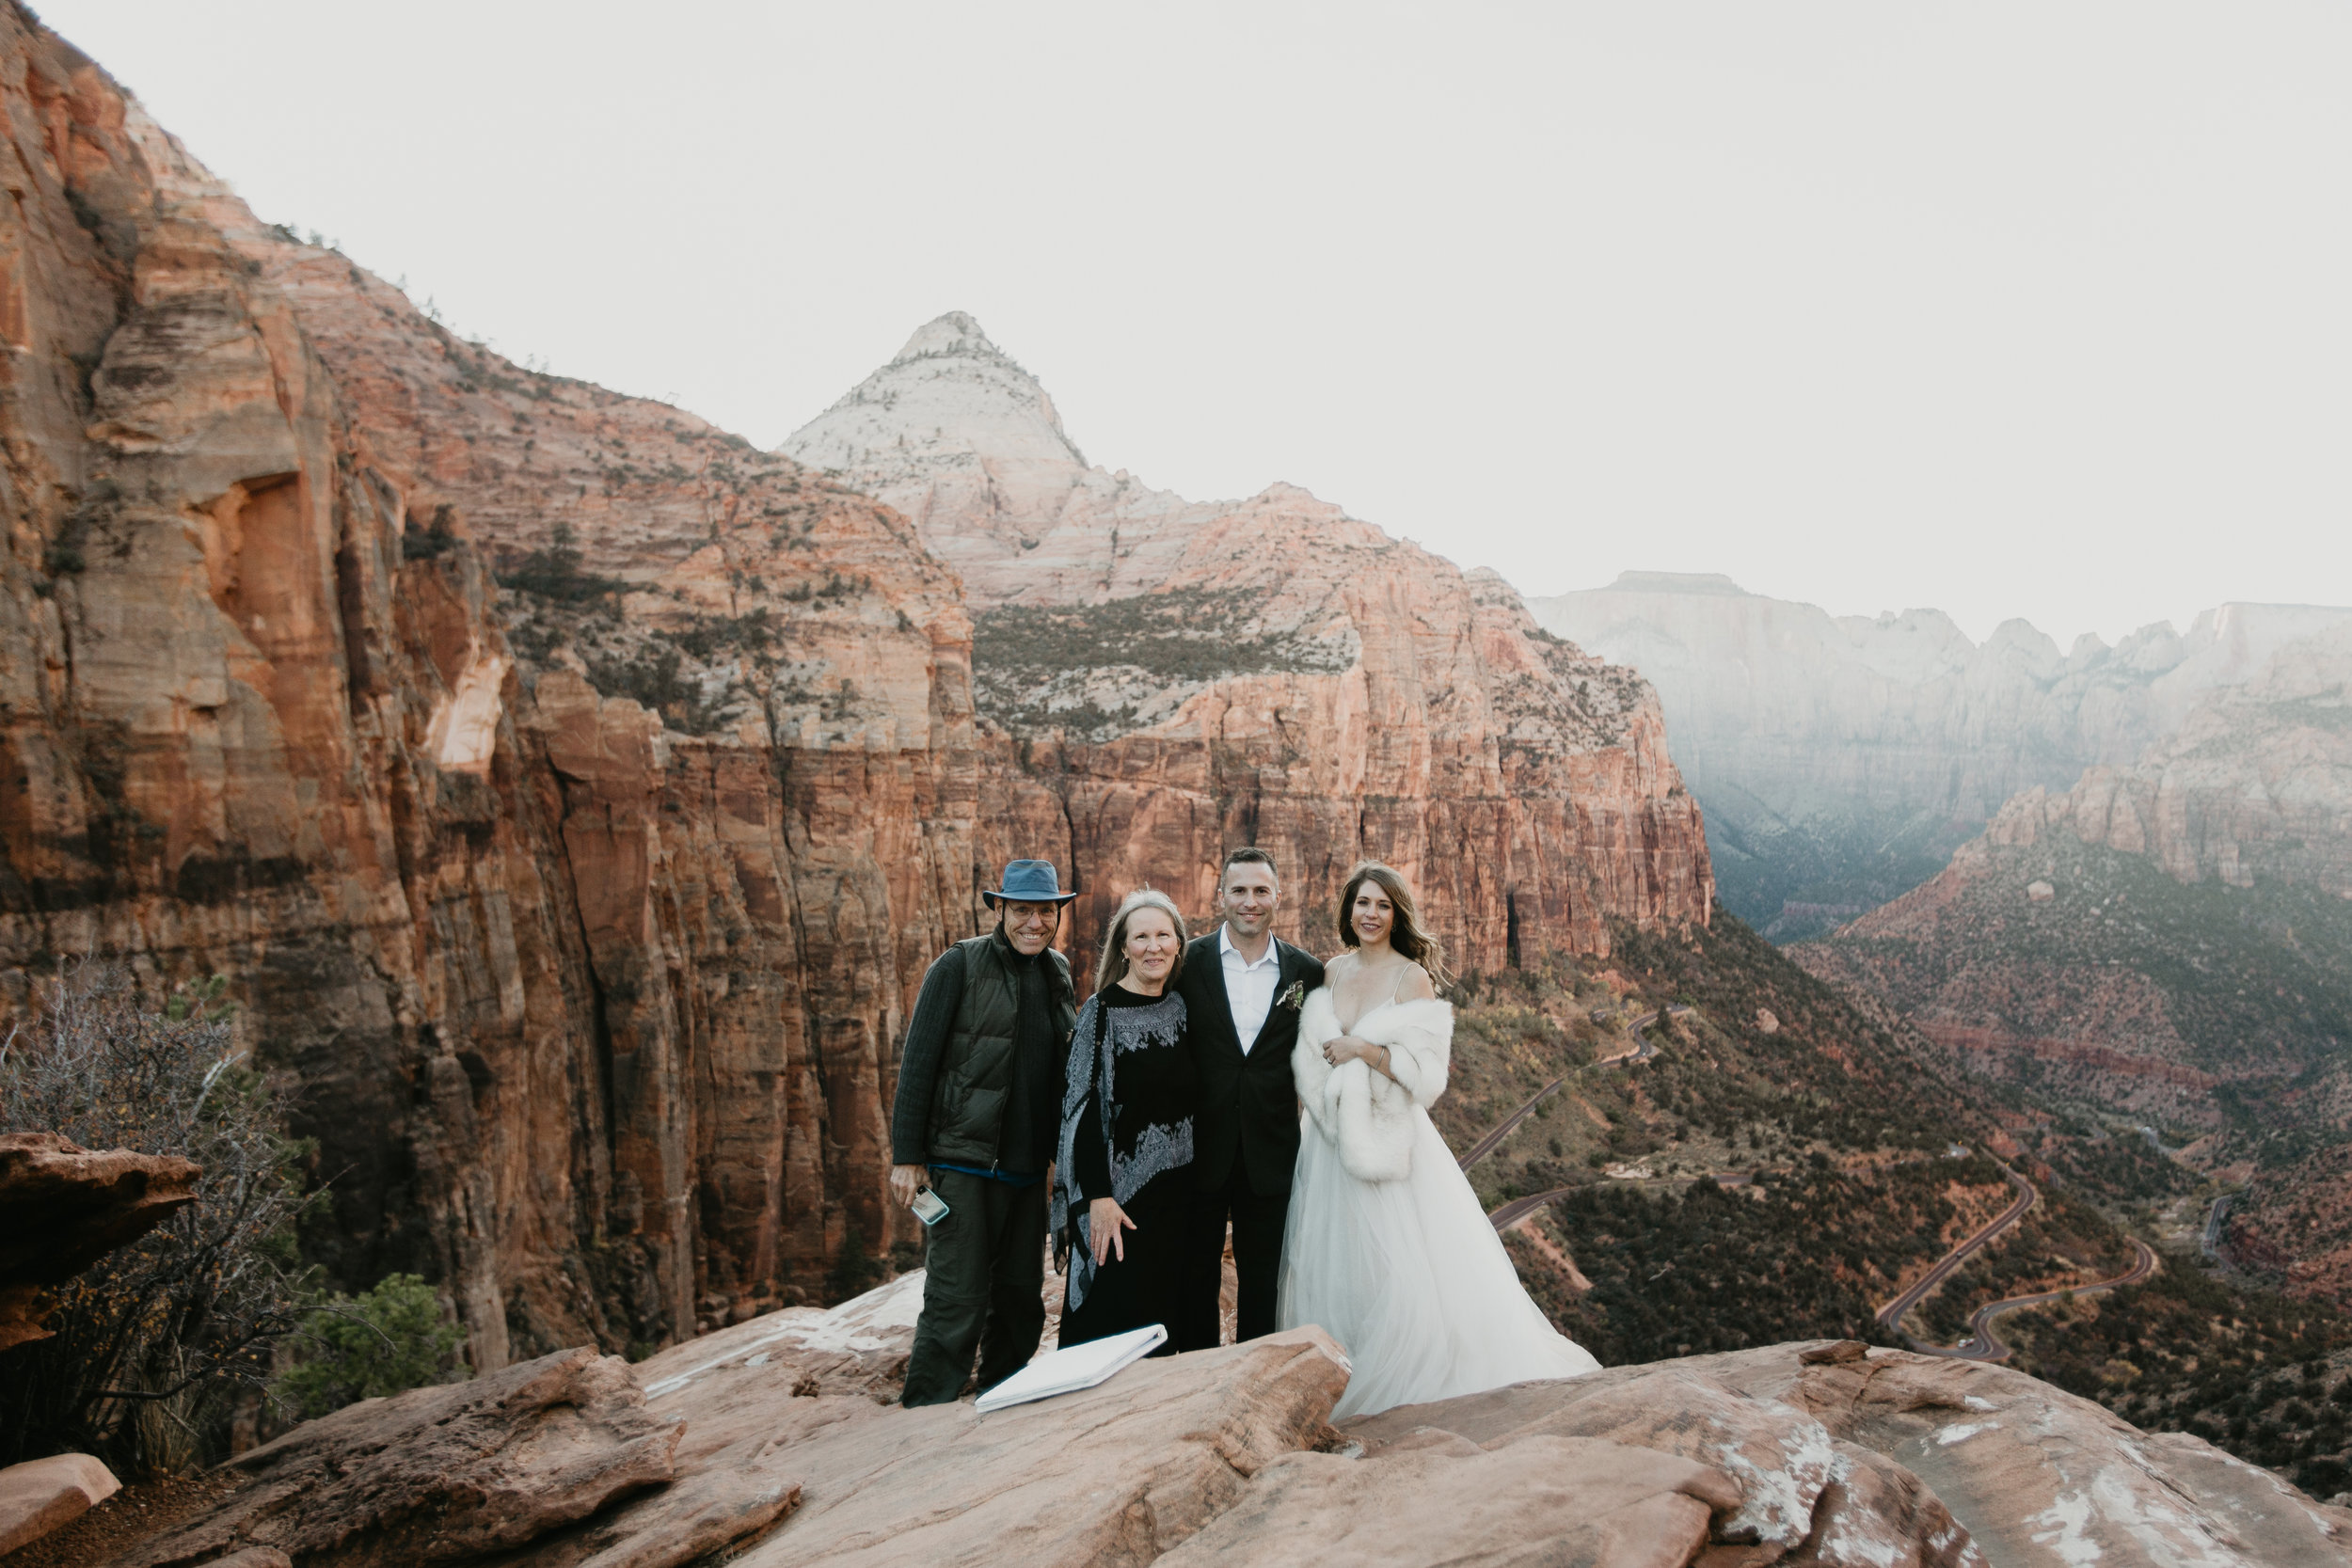 nicole-daacke-photography-zion-national-park-elopement-photographer-canyon-overlook-trail-elope-hiking-adventure-wedding-photos-fall-utah-red-rock-canyon-stgeorge-eloping-photographer-62.jpg